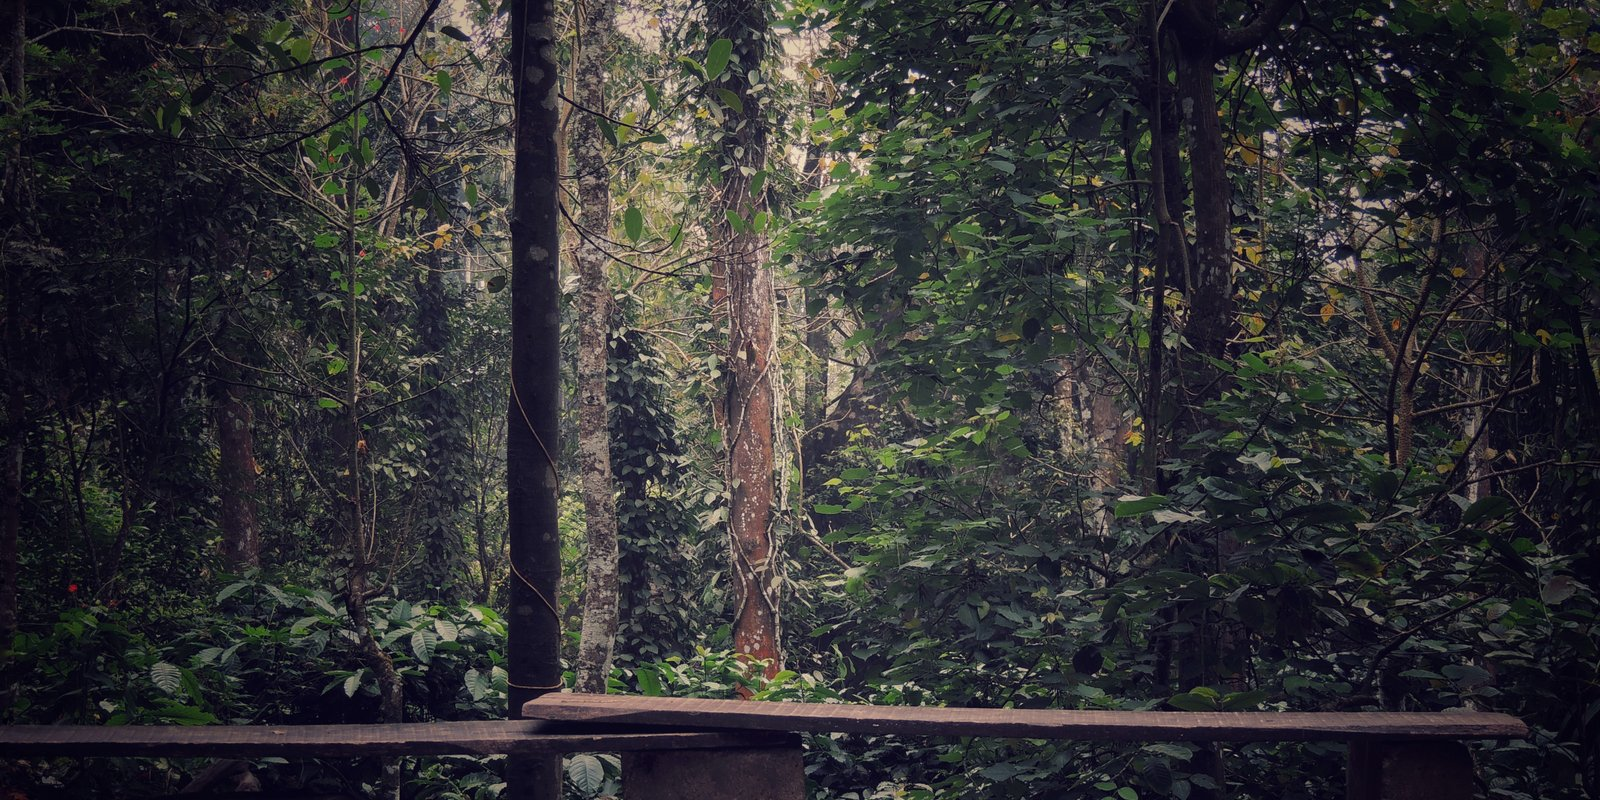 Forest in Wayanad